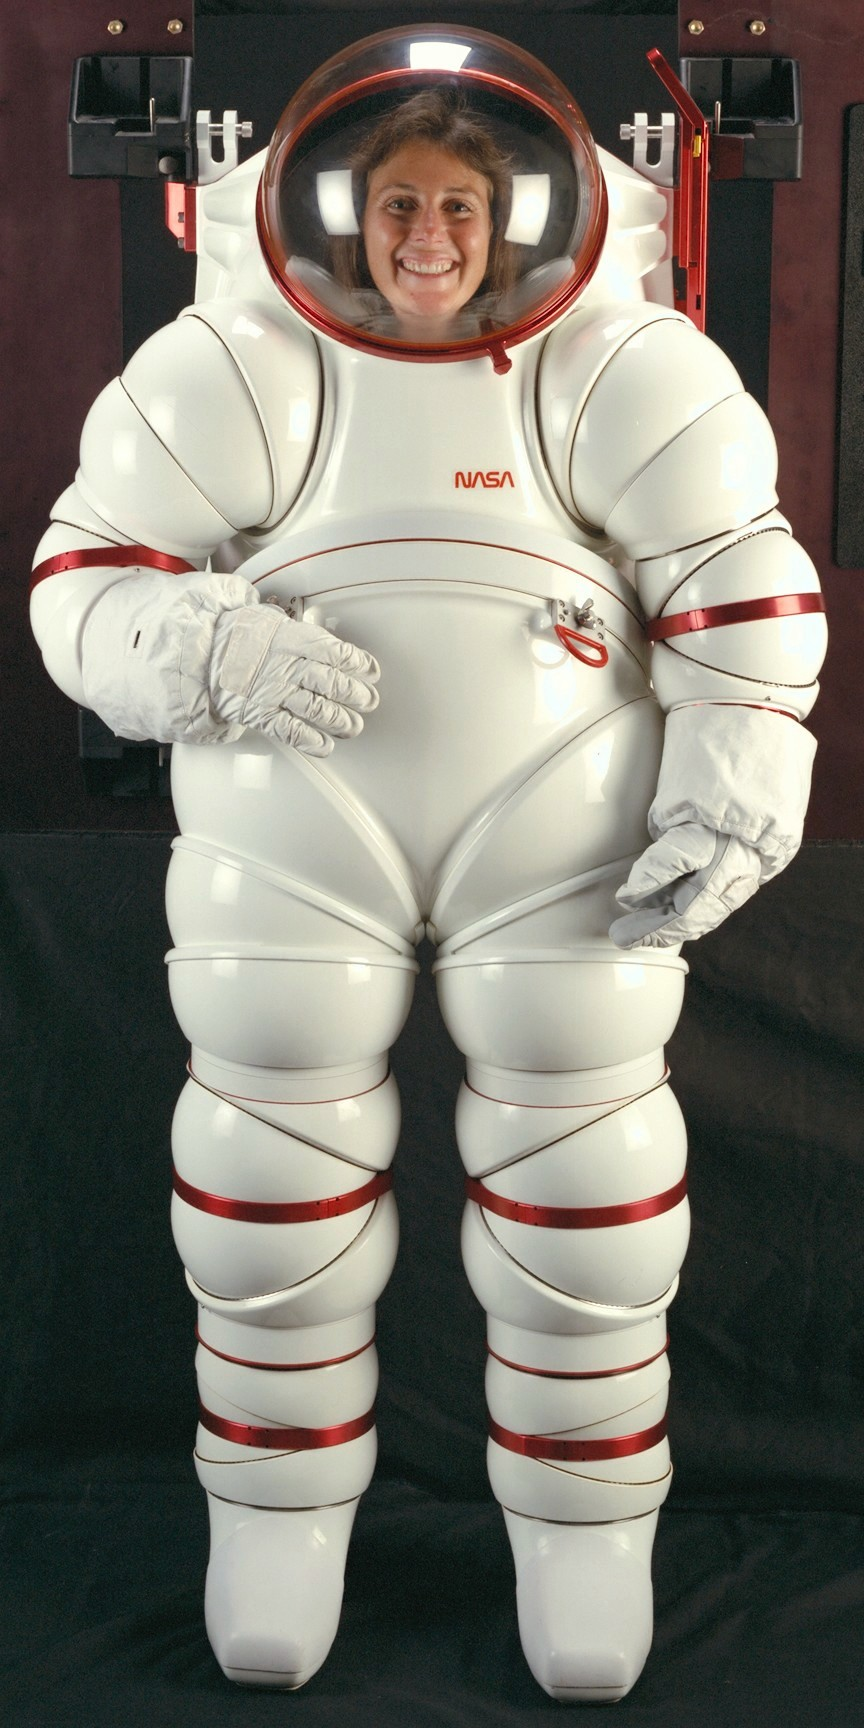 astronaut space suit - photo #46